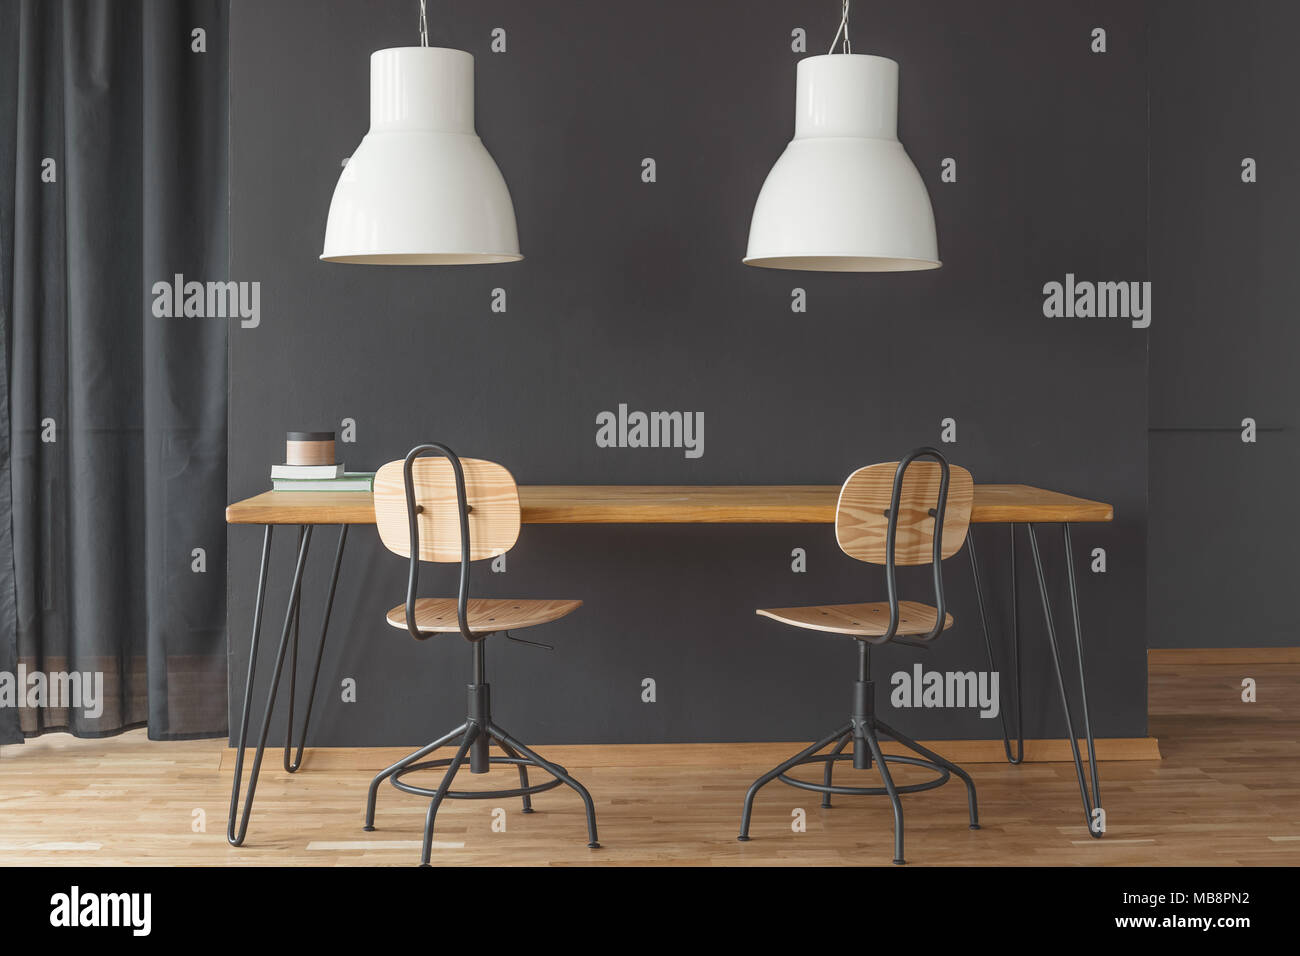 Two white lamps hanging above hairpin table in black dining room interior with curtain and chairs - Stock Image